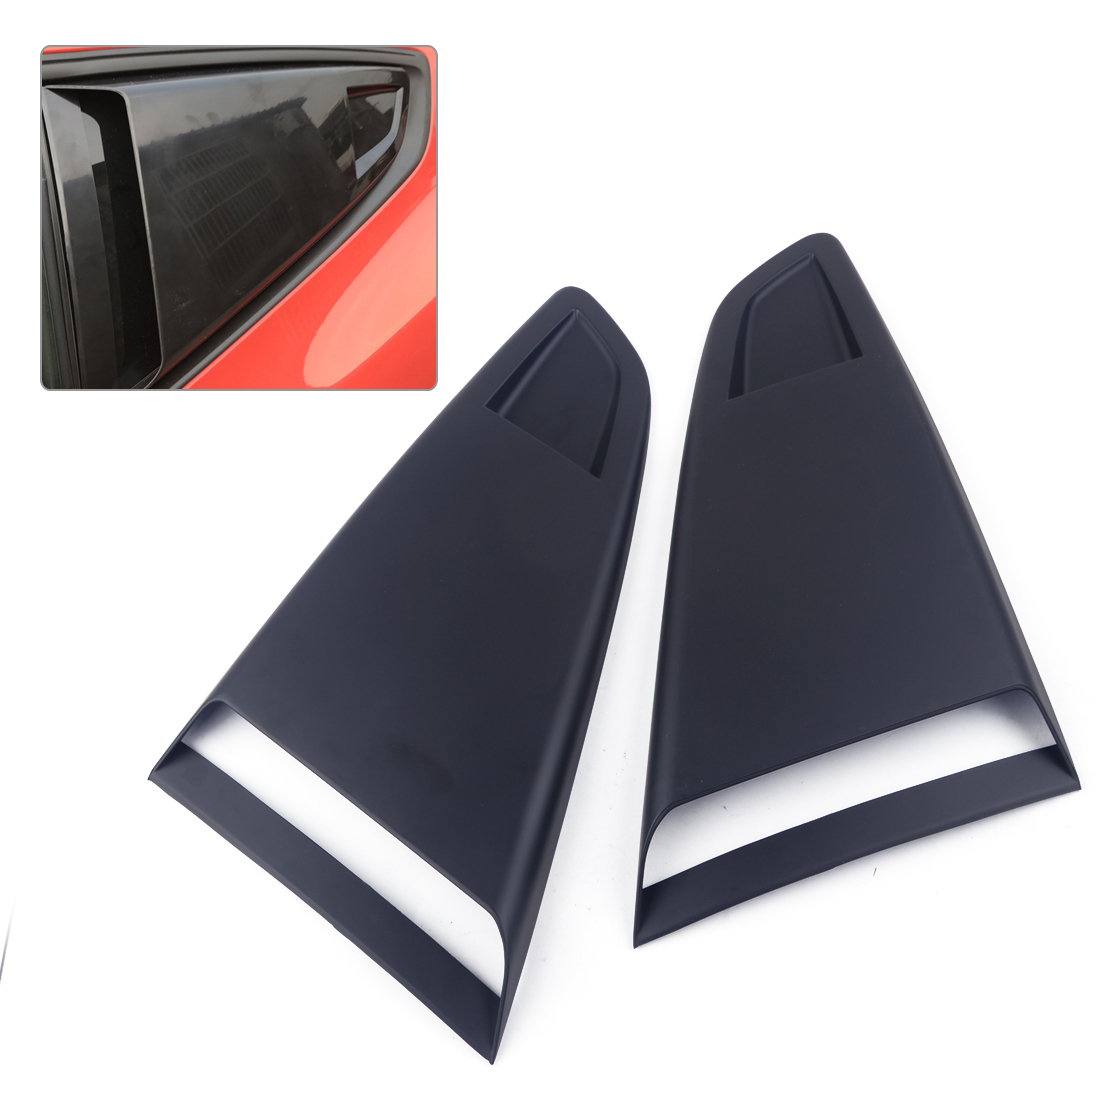 CITALL 1Pair Black Plastic Car Window Quarter Rear Louver Side Vent Scoop Cover Trim Fit For <font><b>Ford</b></font> <font><b>Mustang</b></font> <font><b>2015</b></font> 2016 2017 2018 image